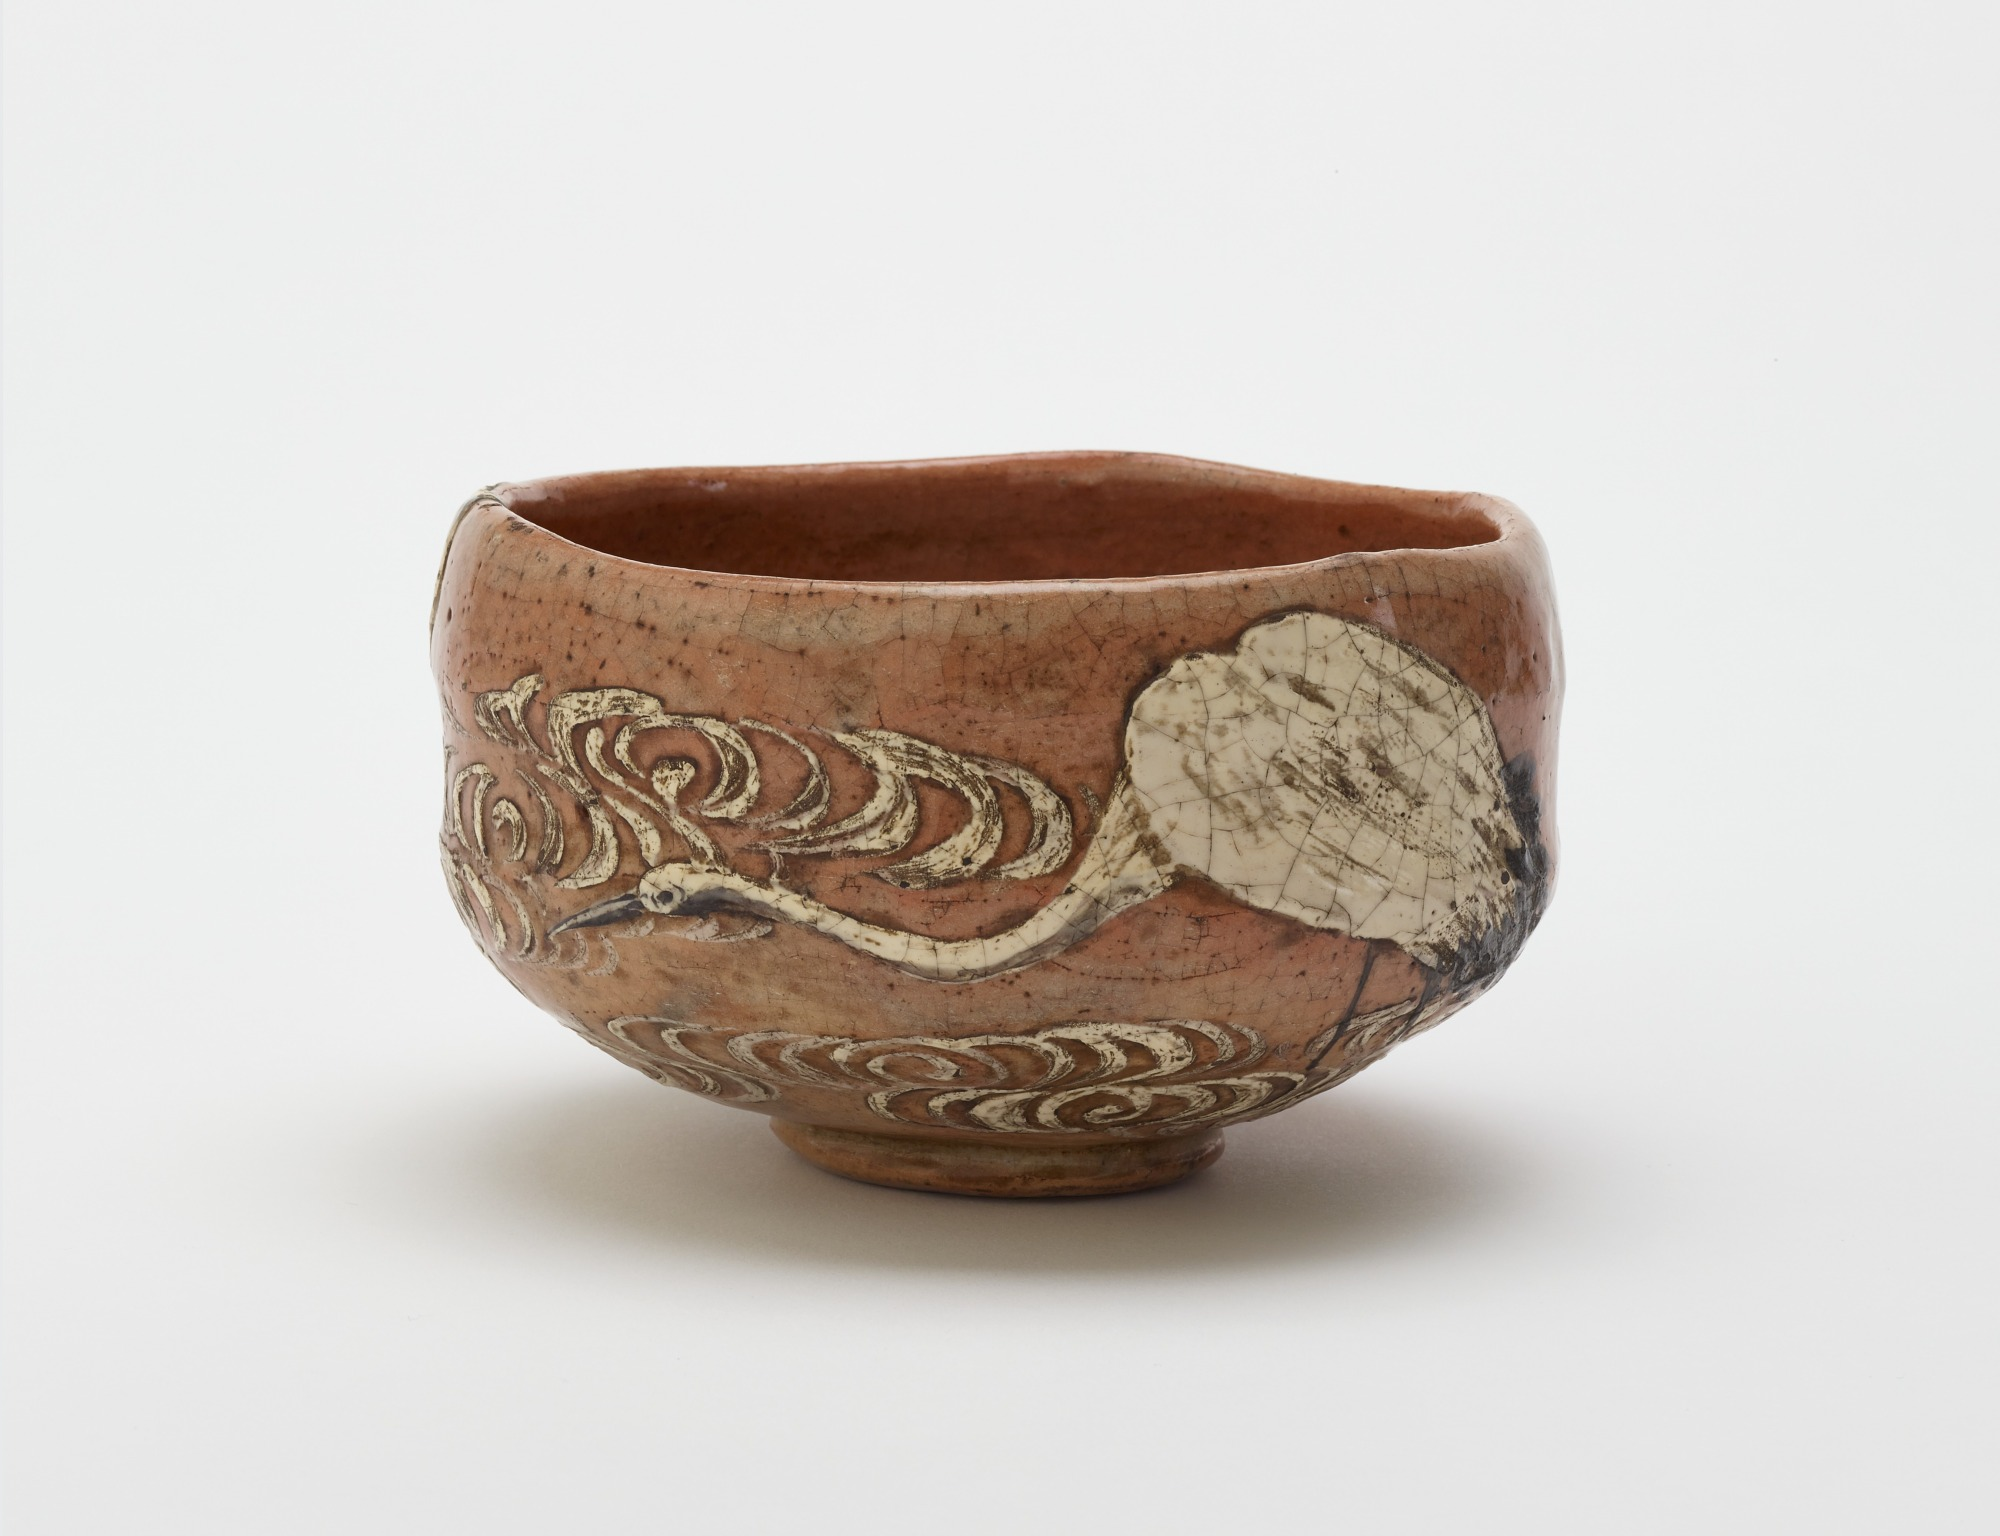 profile: Kenzan style tea bowl with design of crane and flowing water